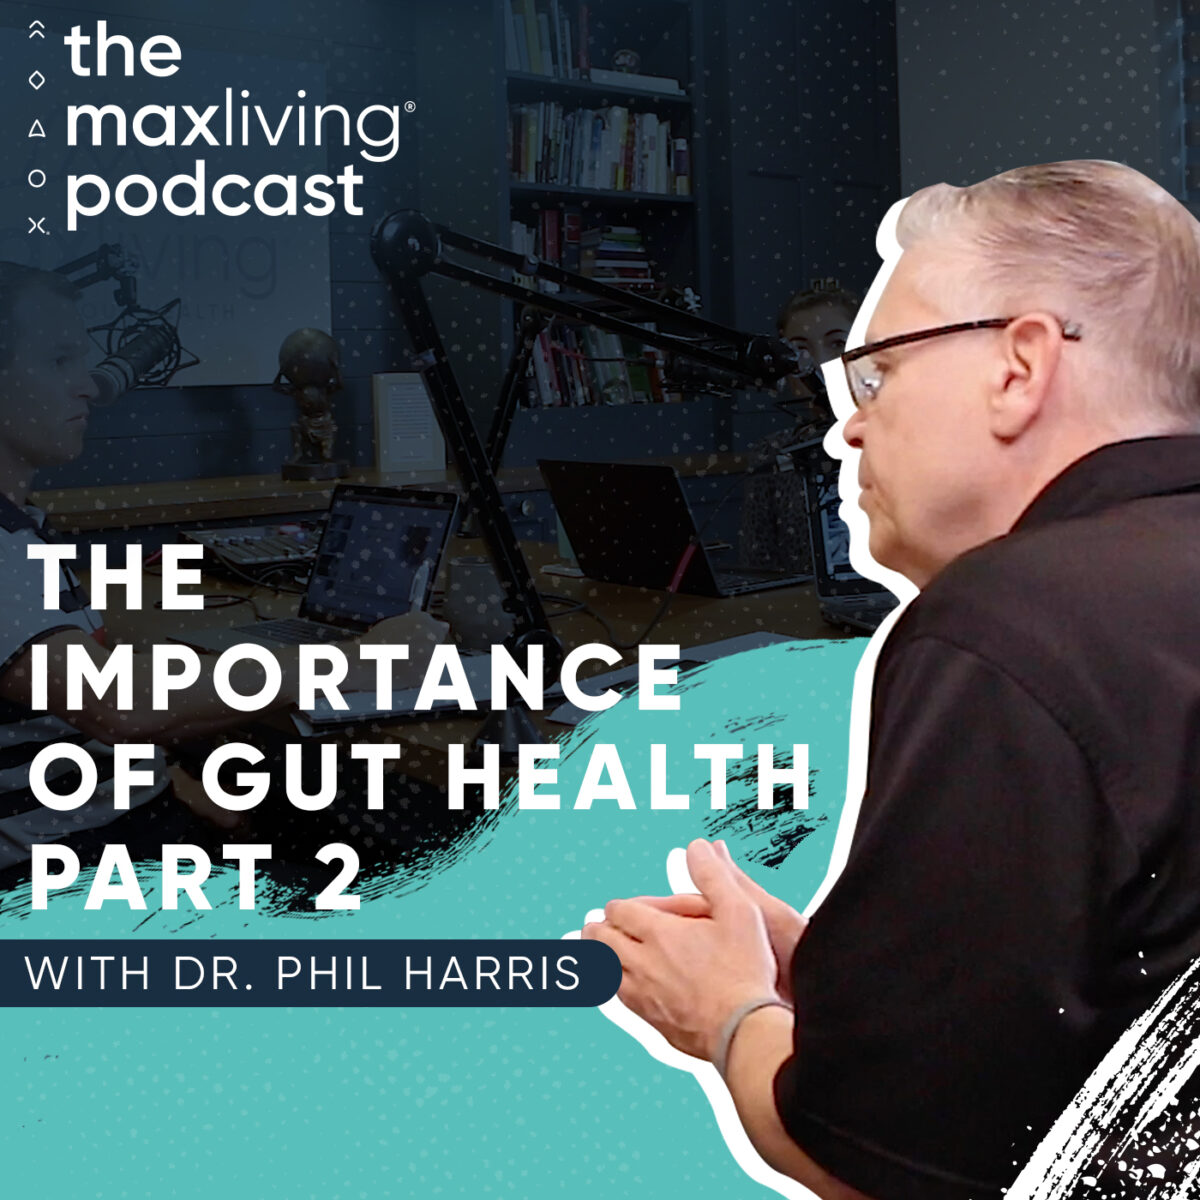 The Importance of Gut Health Part 2